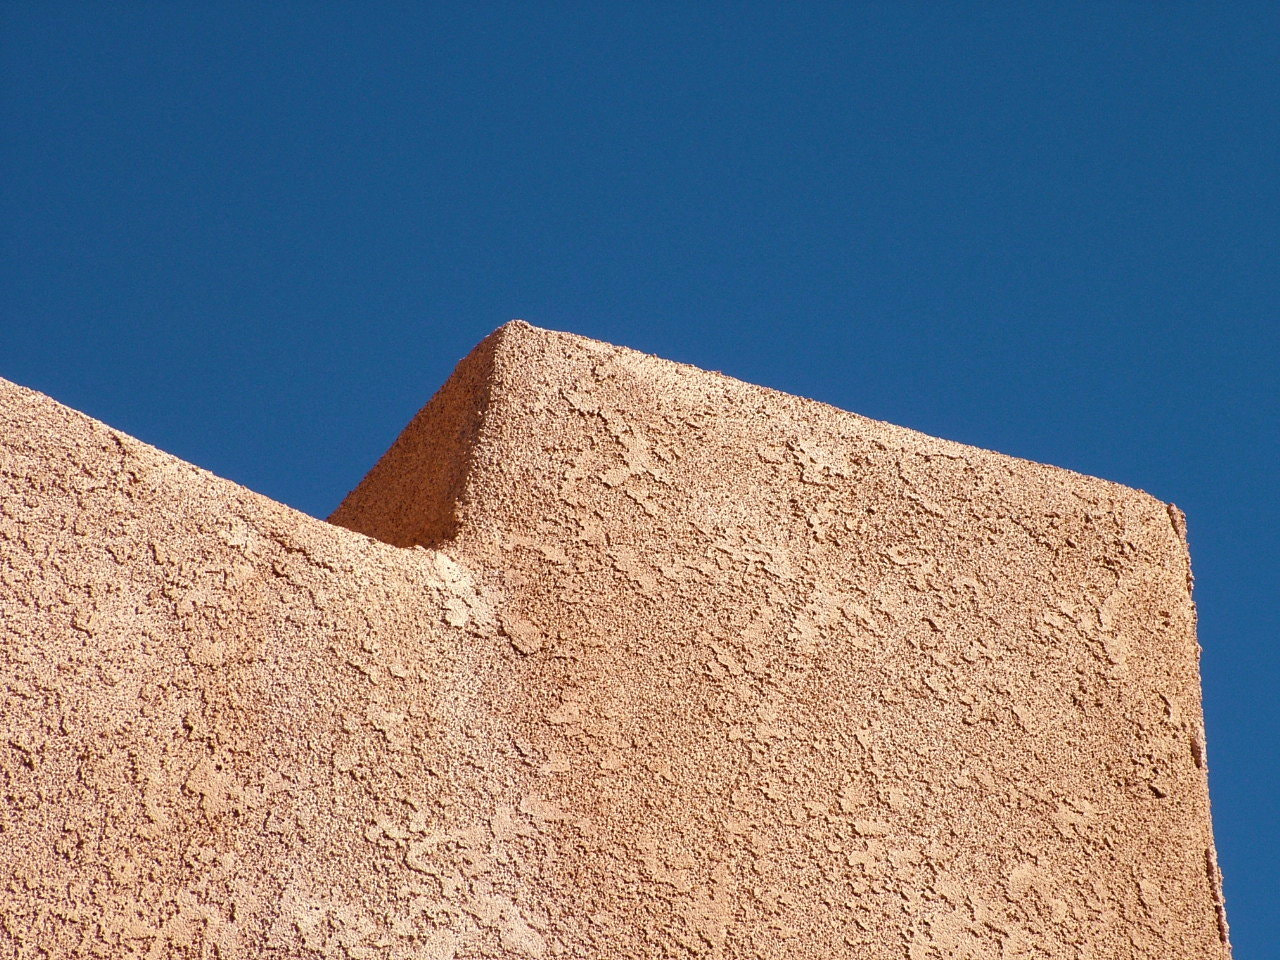 Photograph Adobe Parapet by Sandee Gass on 500px